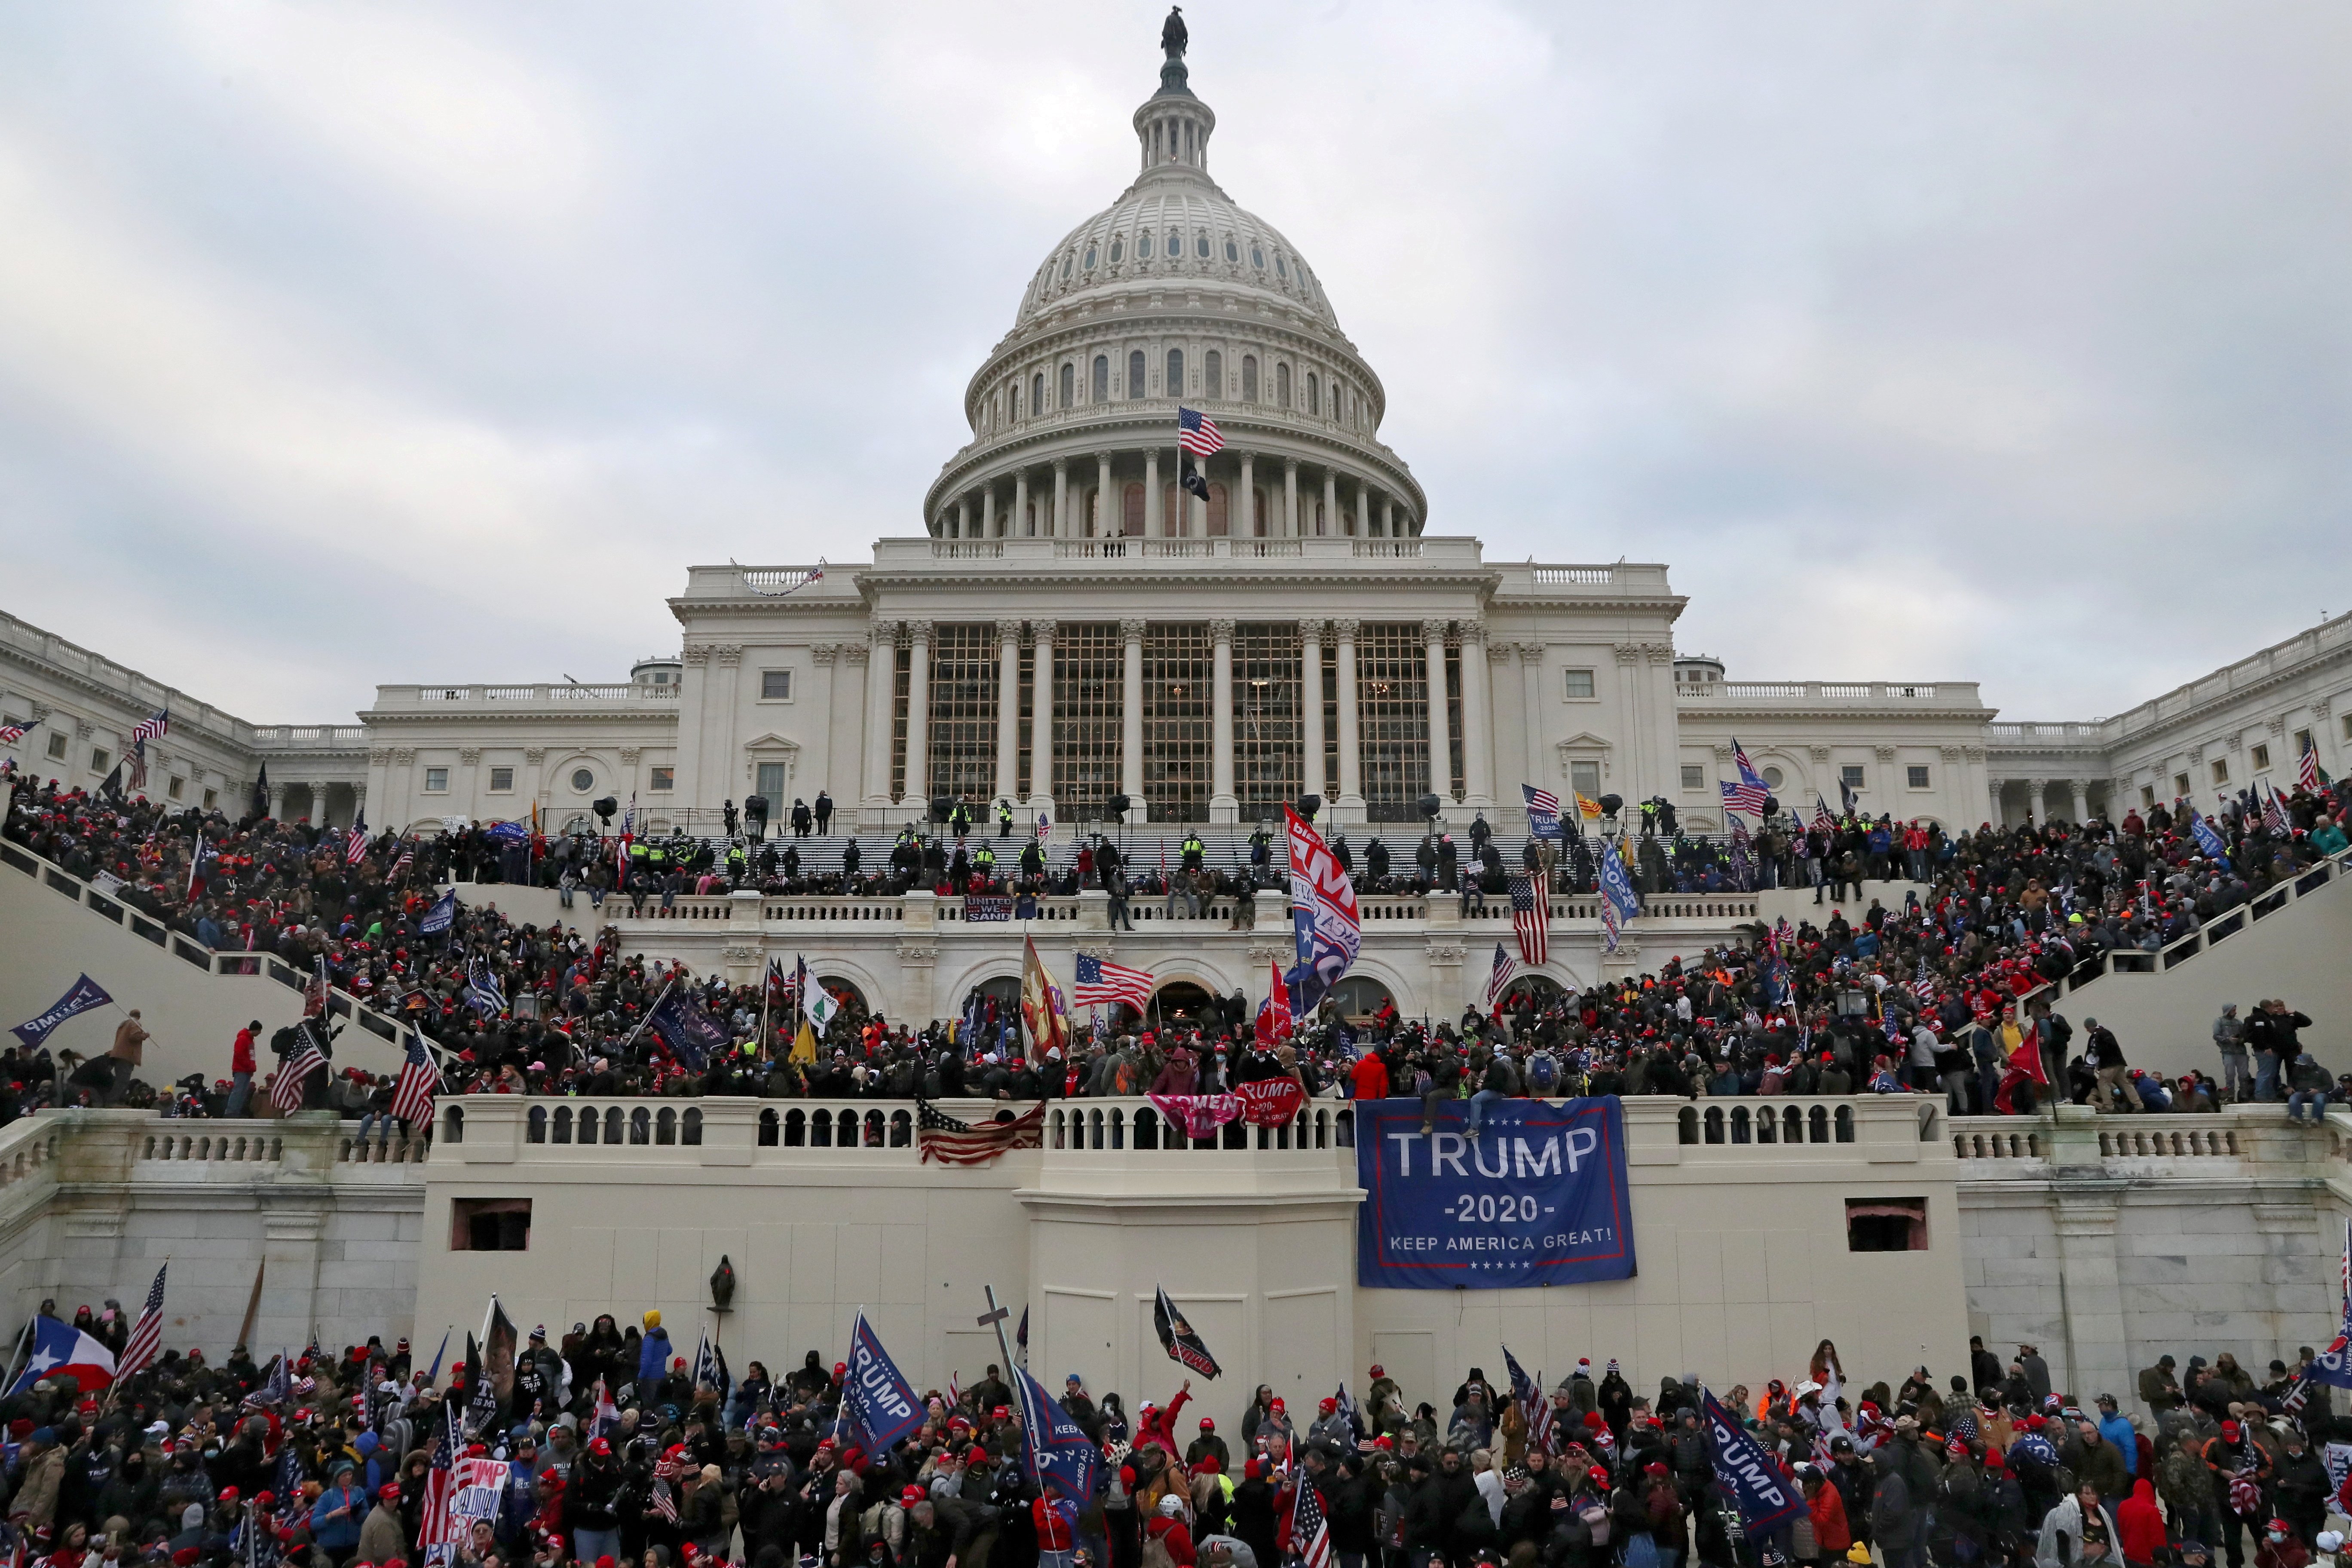 A mob of supporters of U.S. President Donald Trump storm the U.S. Capitol Building in Washington, U.S., January 6, 2021. REUTERS/Leah Millis